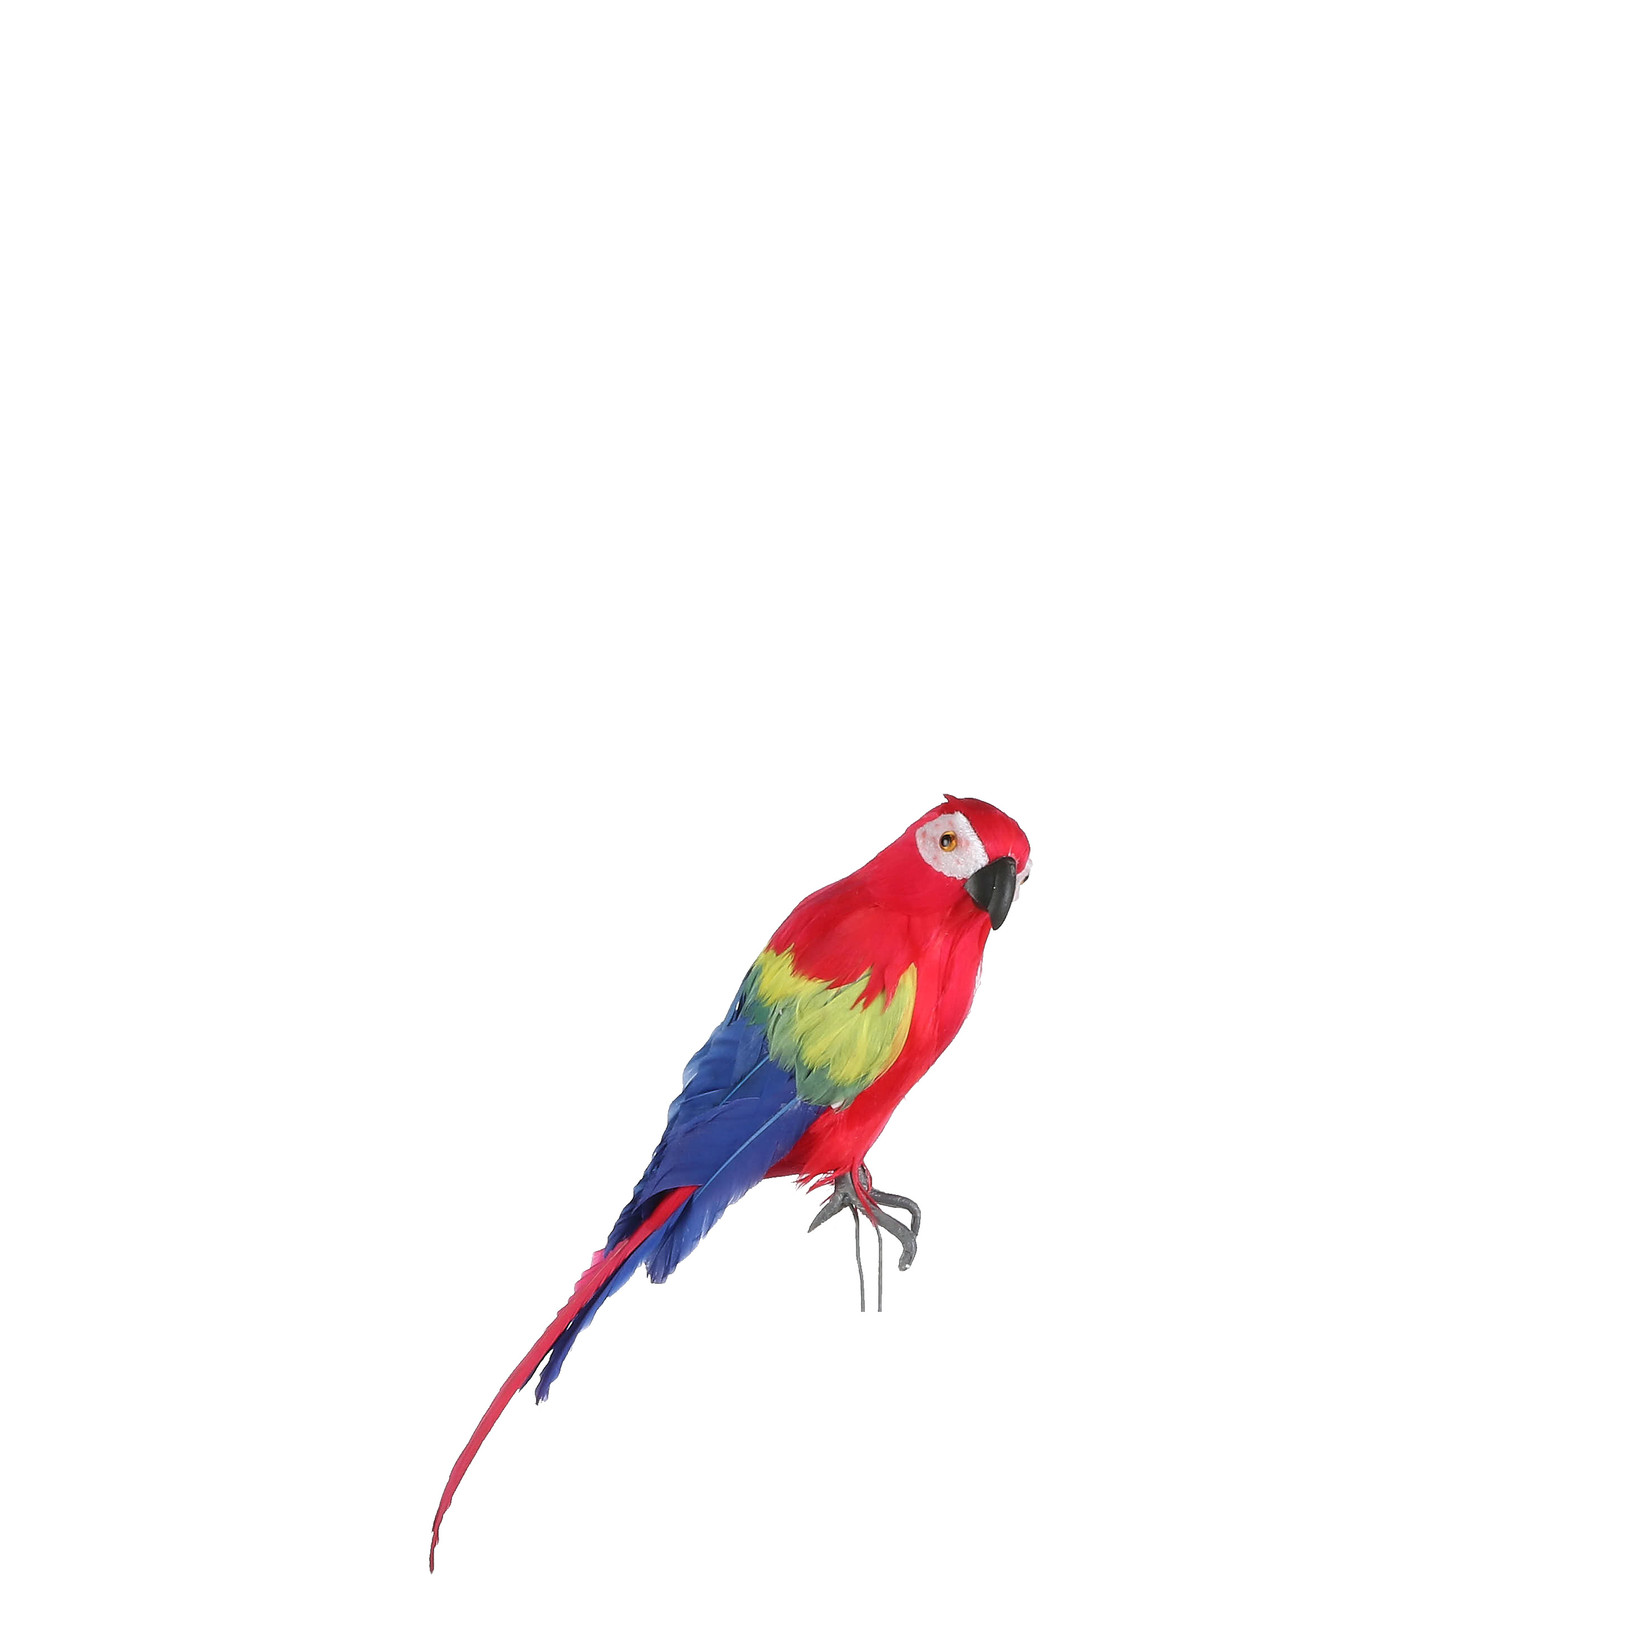 MiCa 1062374 Parrot red